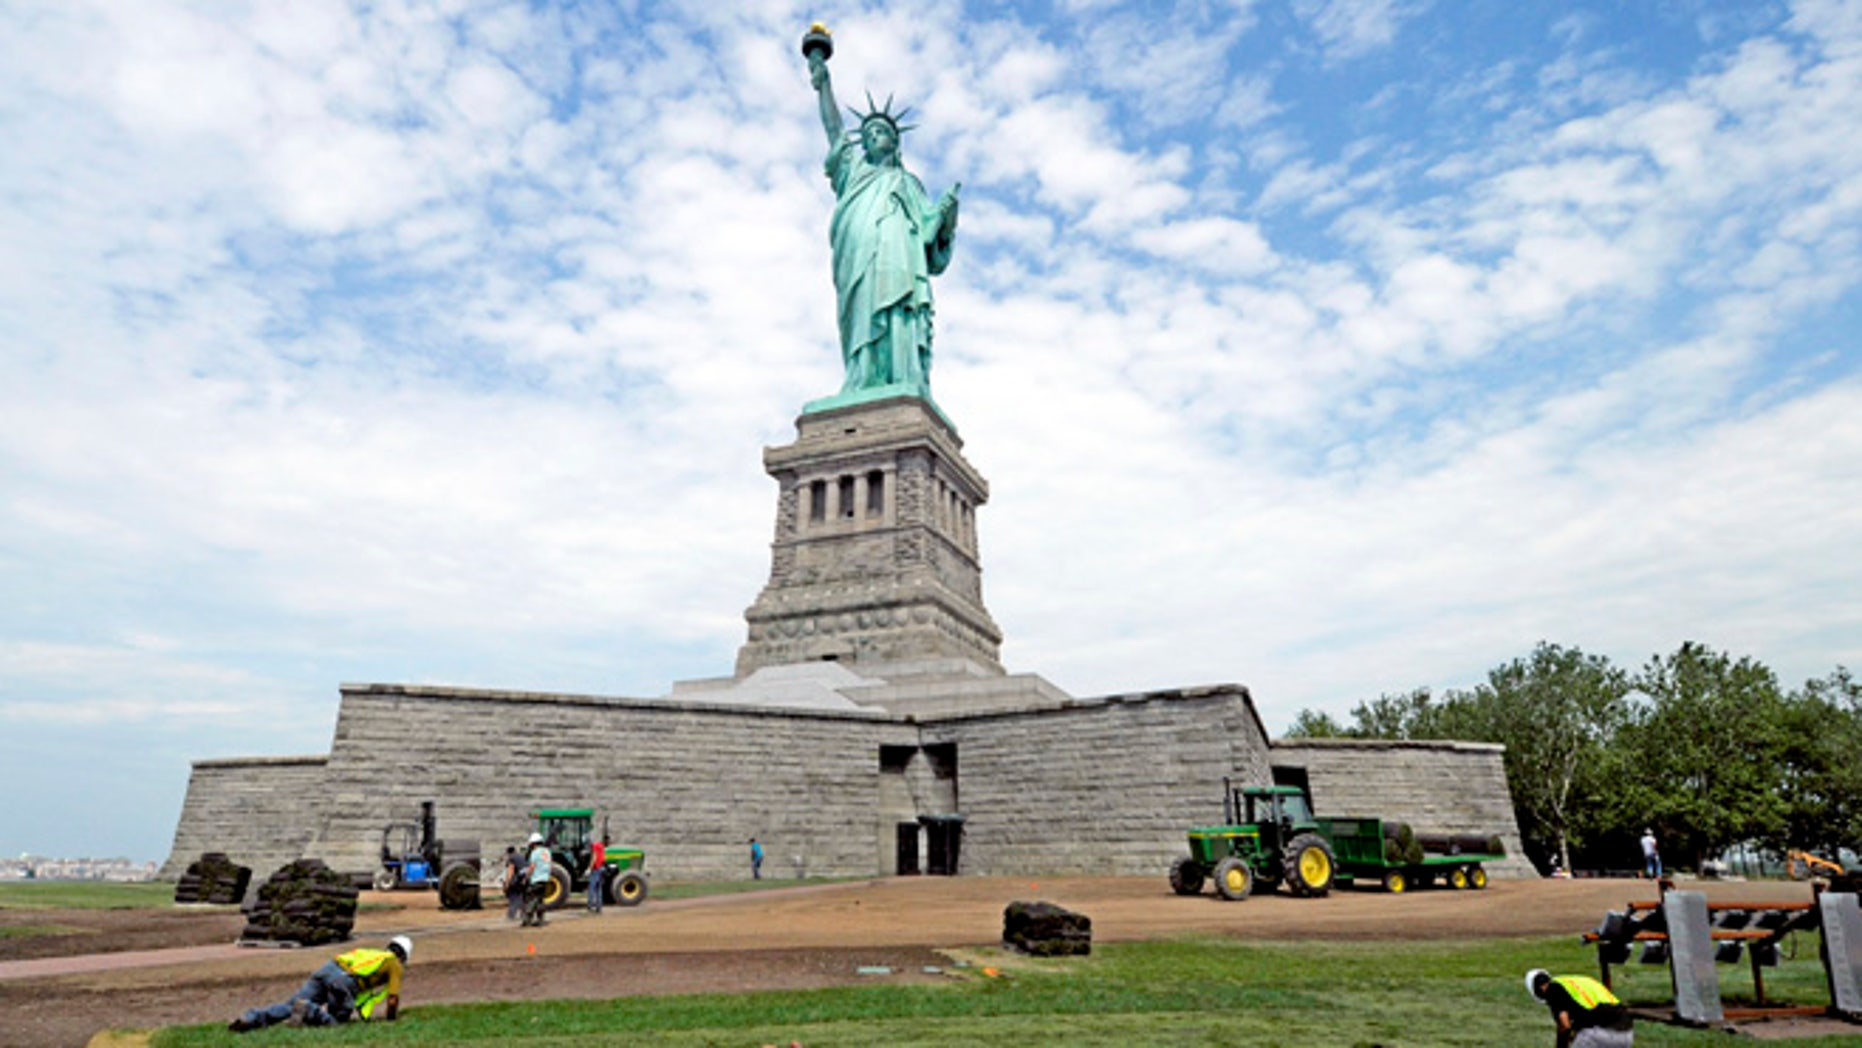 June 26, 2013: In this photo provided by the National Park Service, workers on Liberty Island install sod around the national monument which is set to re-open on the 4th of July, in New York. Months after railings broke, docks and paving stones were torn up and buildings were flooded by Superstorm Sandy, the Statue of Liberty will finally welcome visitors again.